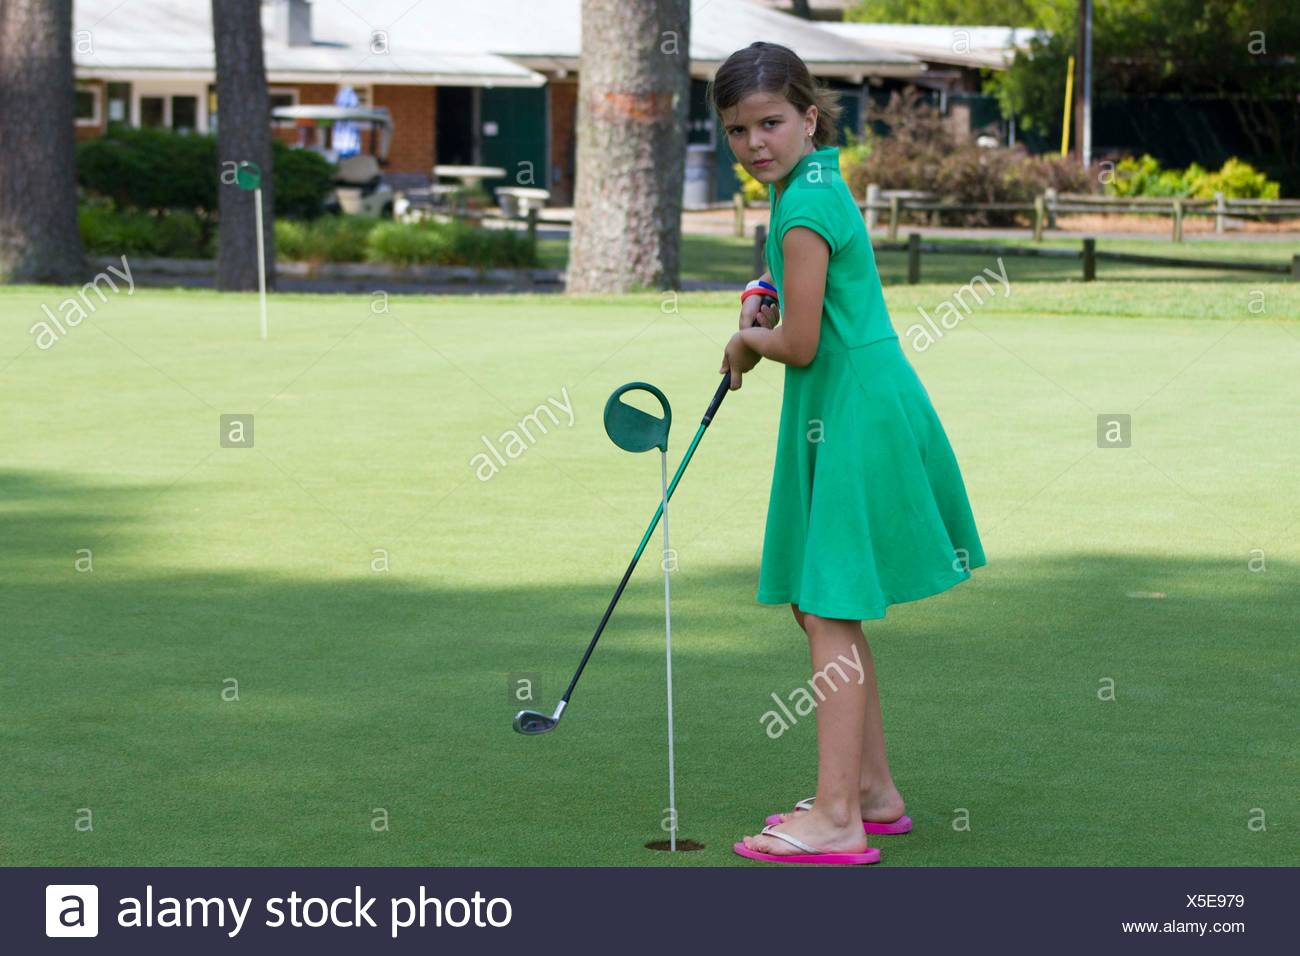 girl playing golf driving range stock photos girl. Black Bedroom Furniture Sets. Home Design Ideas